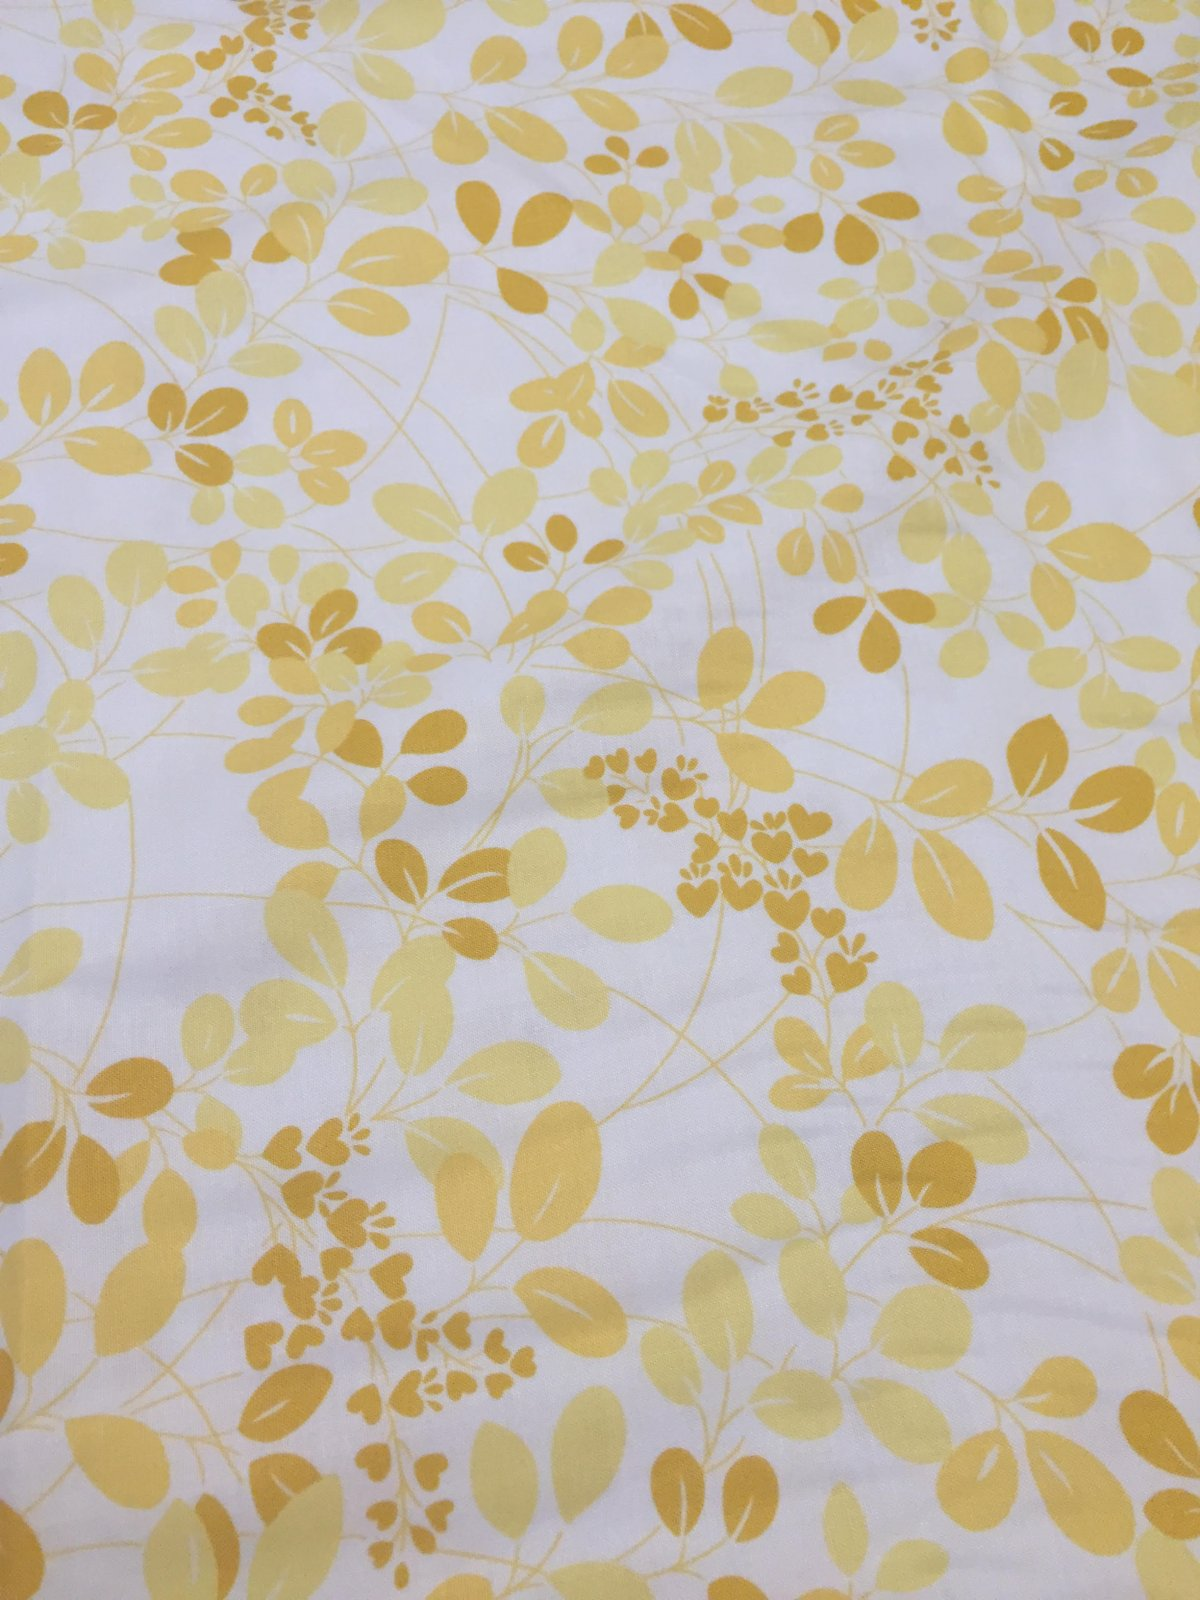 Moda - Simply Colorful V and Co. 10840 23 yellow / white leafs